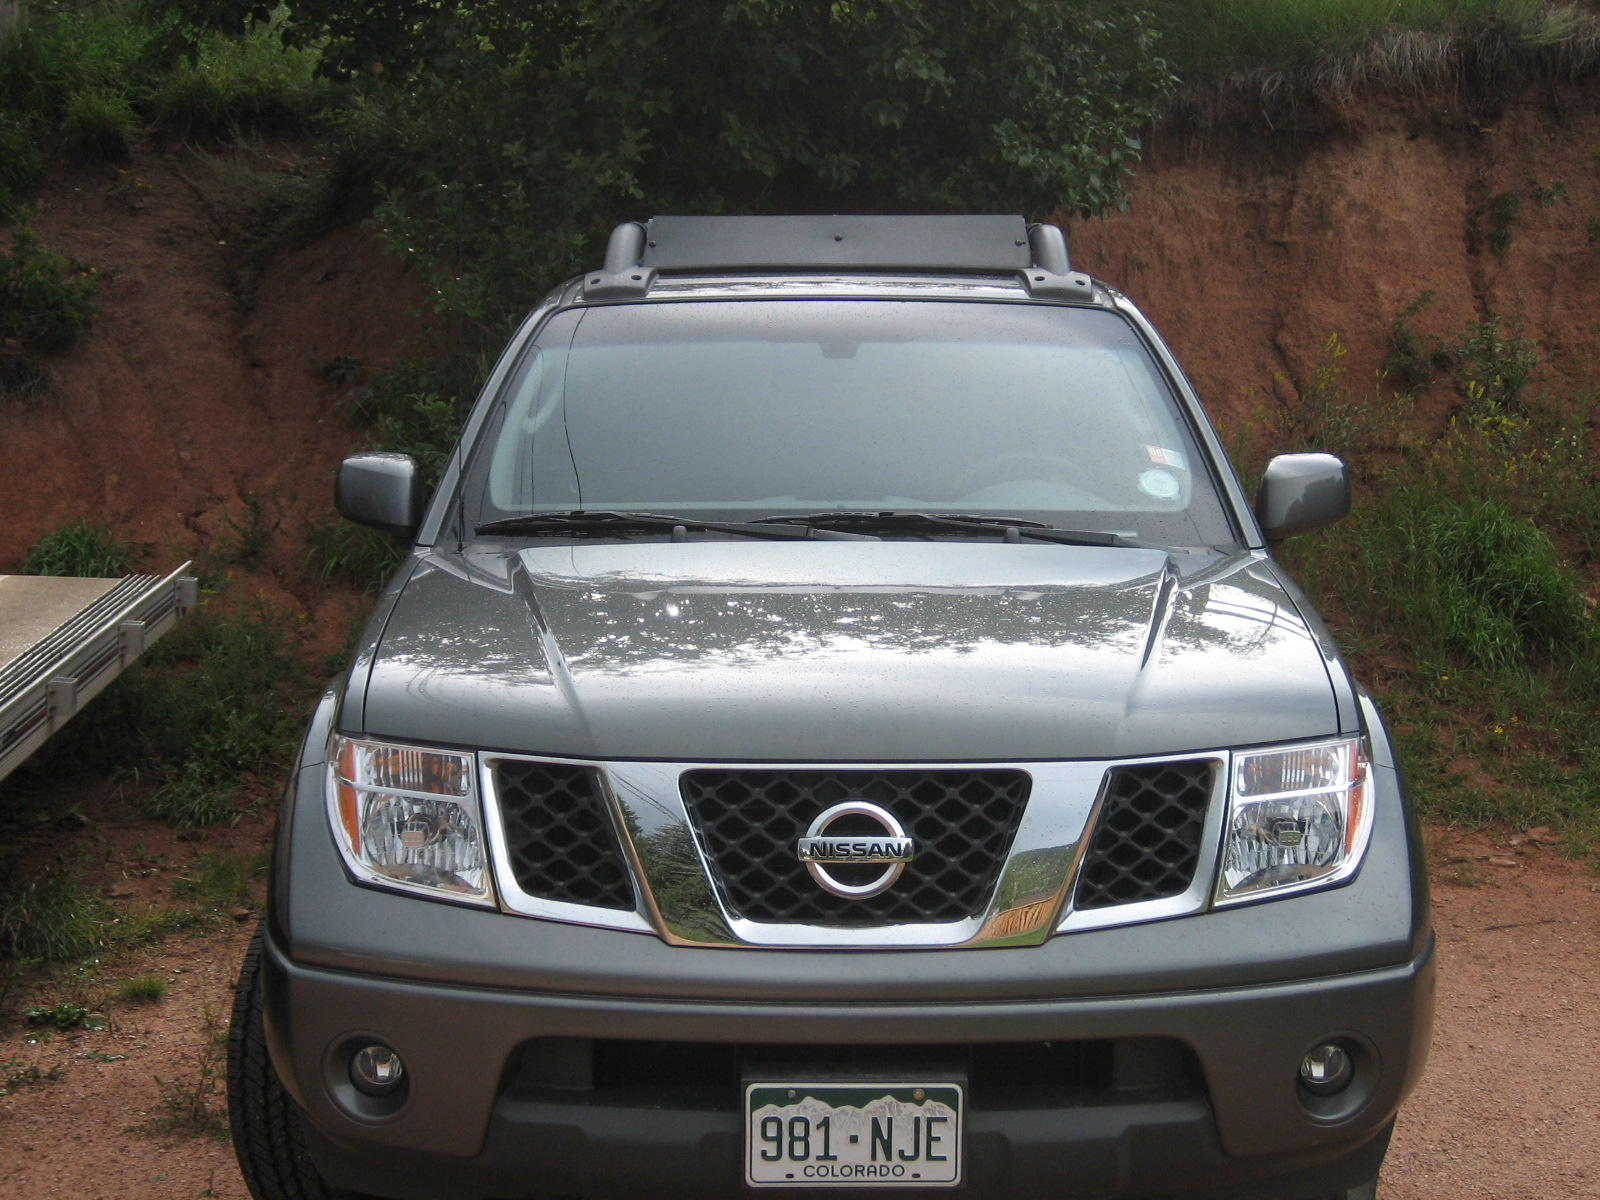 Fairing for factory roof rack? - Nissan Frontier Forum